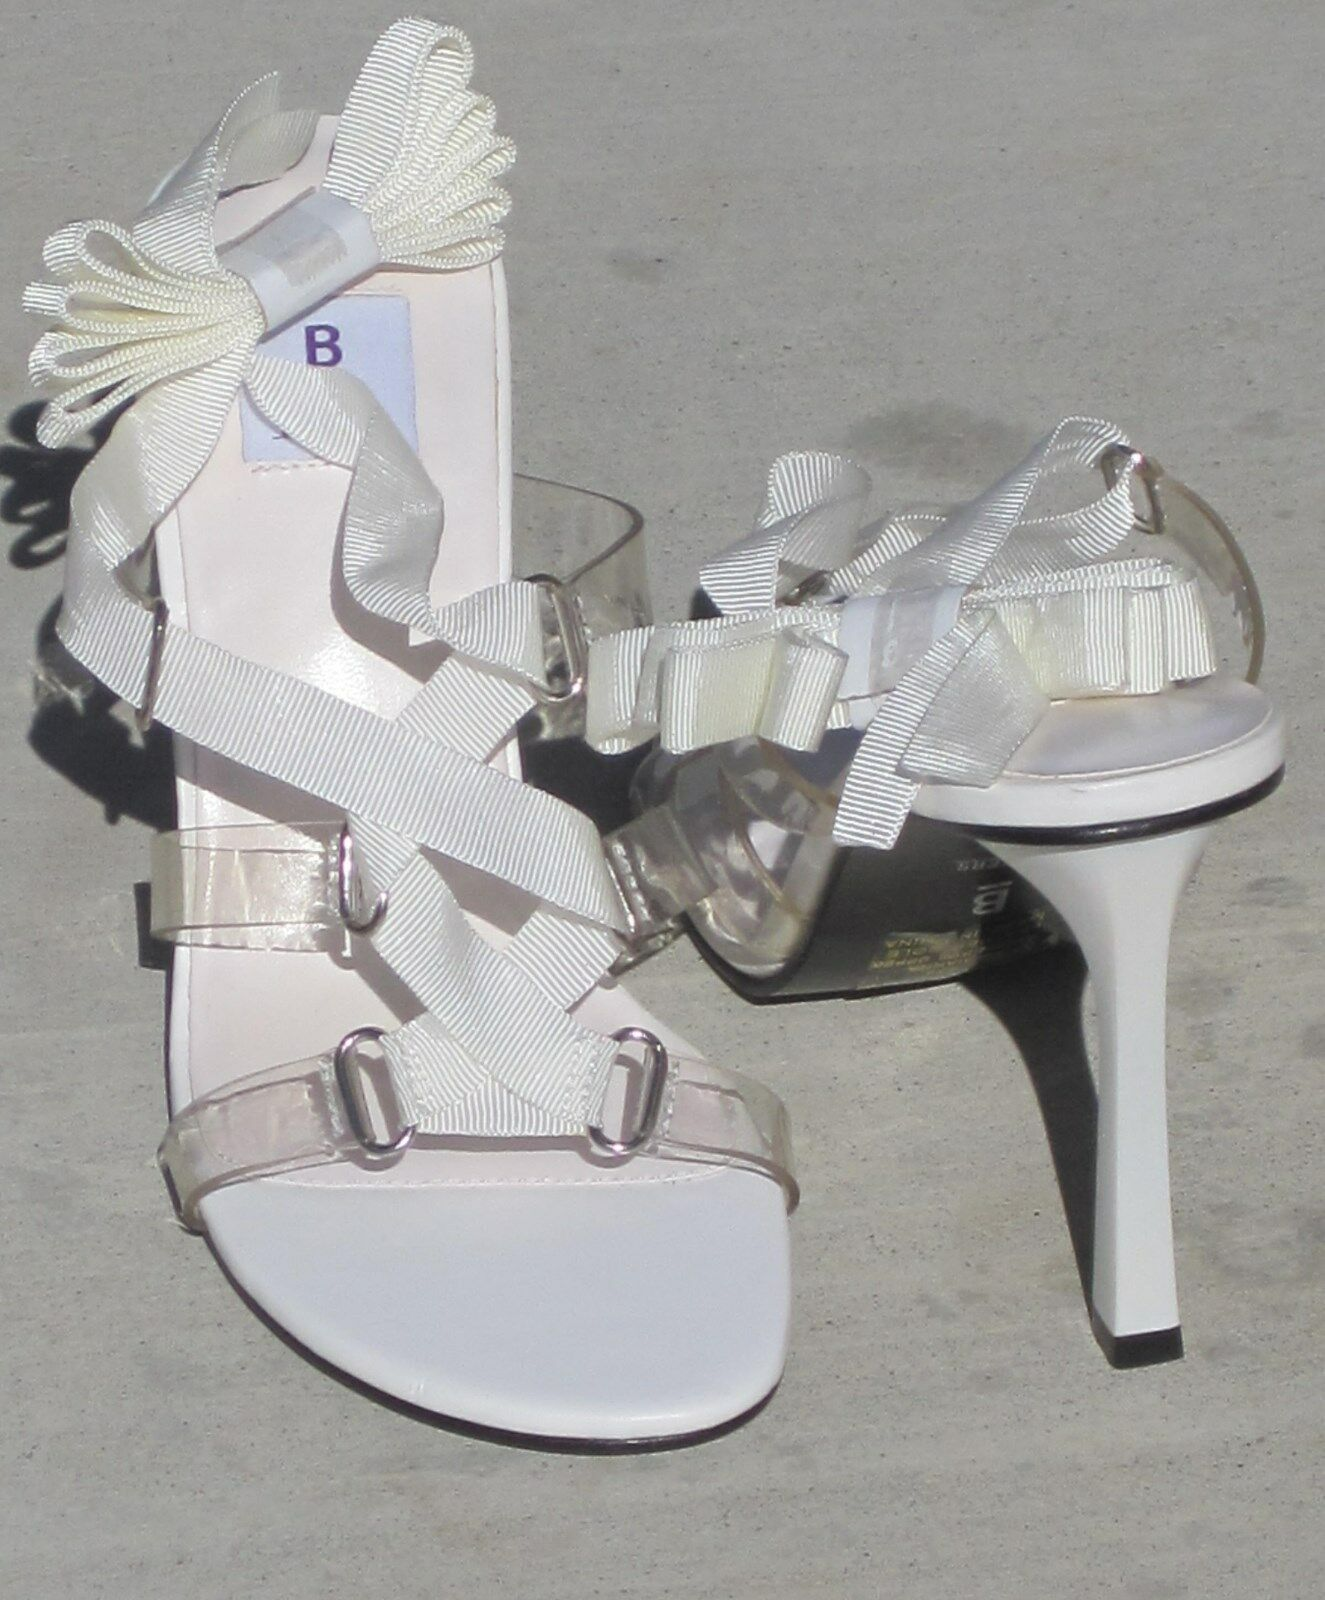 NEW BAKERS WHITE RIBBON CLEAR PLASTIC HEELS PUMPS SHOES 8M ANKLE TIE GIANNA